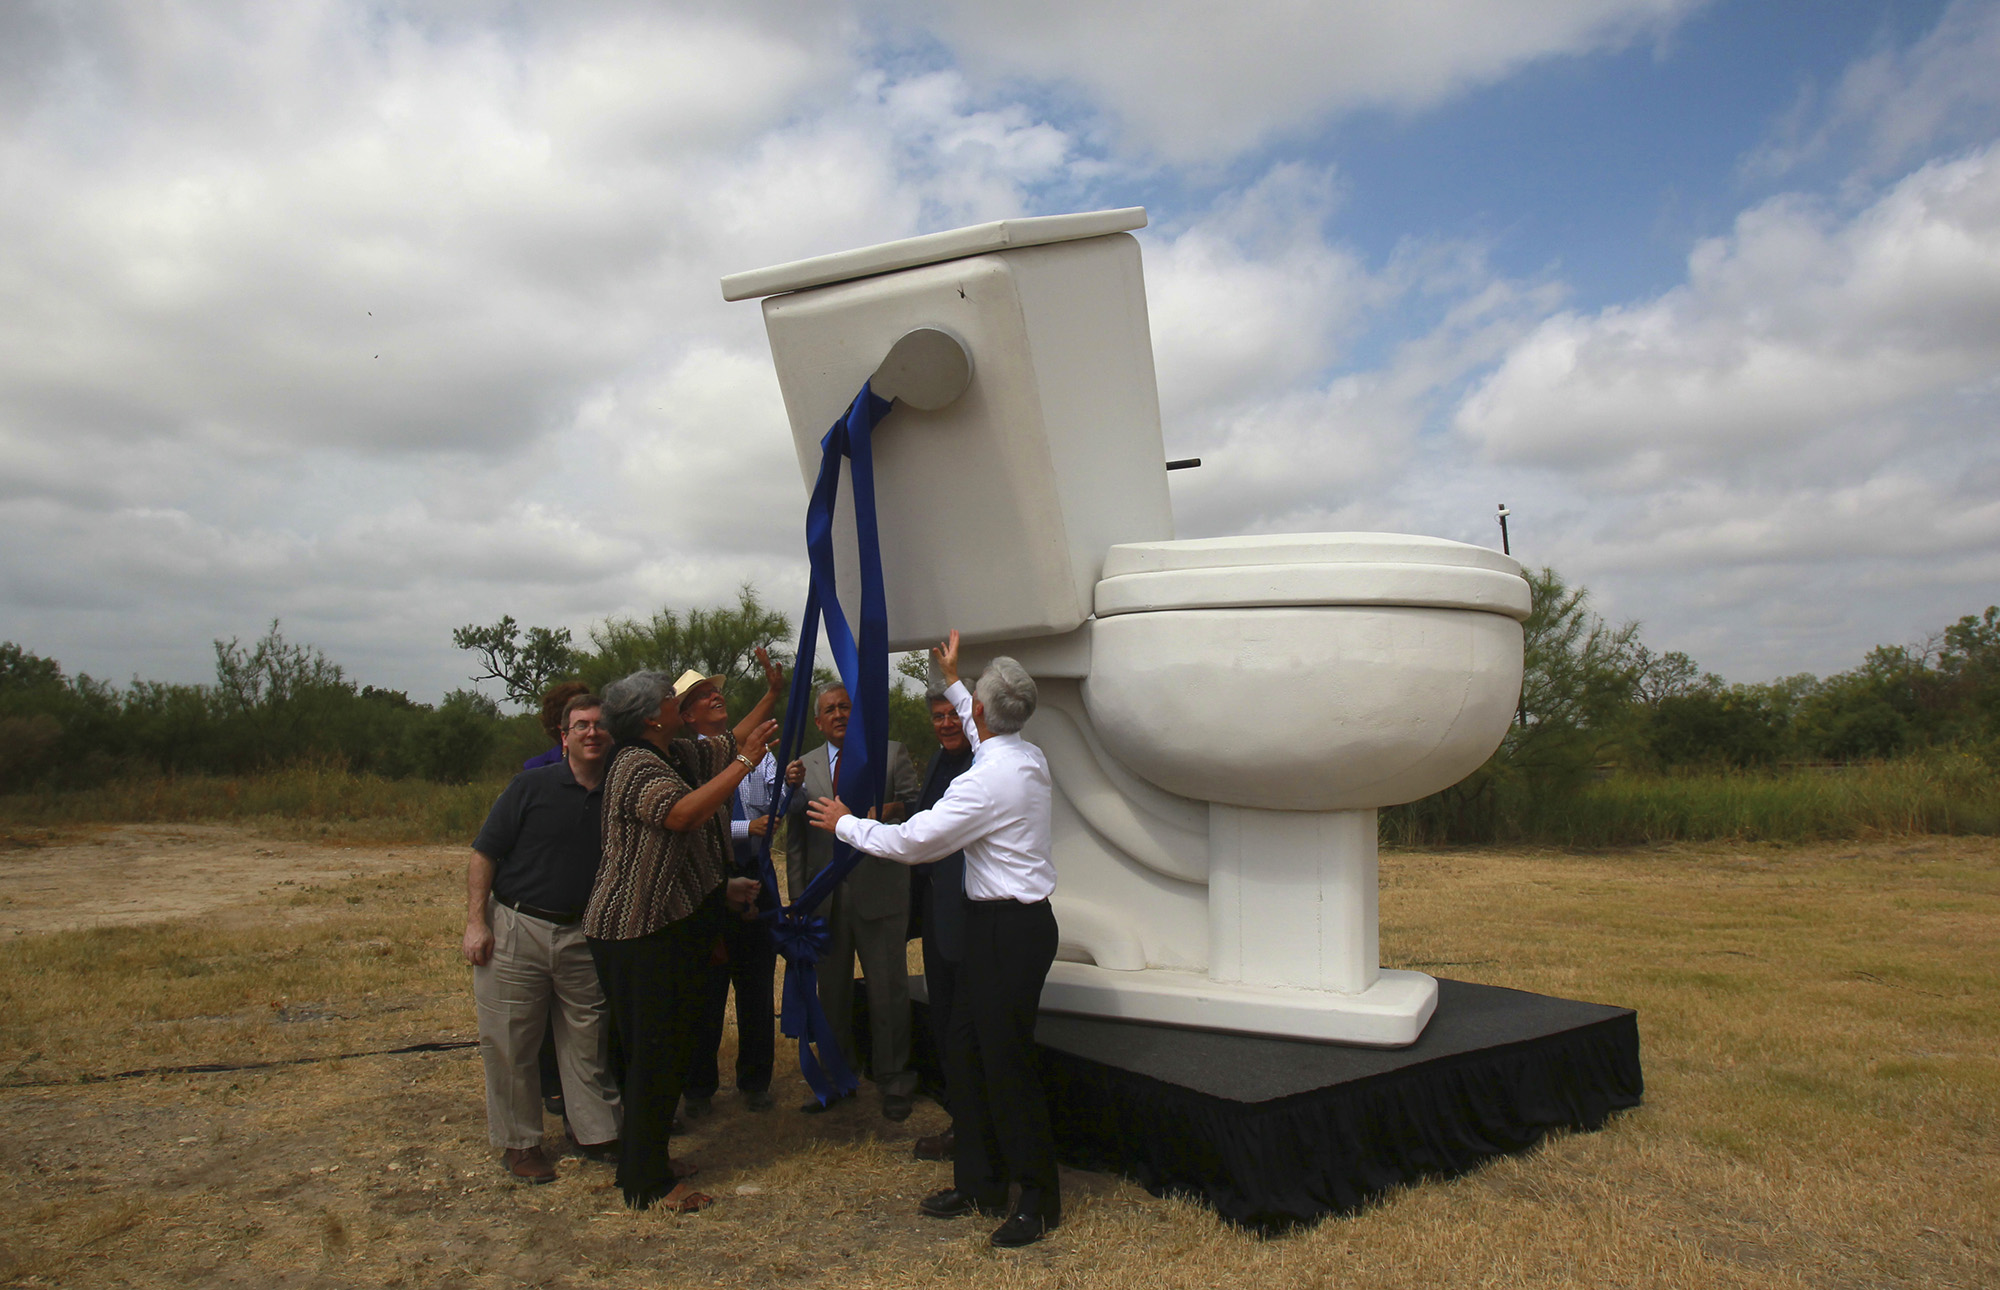 Saws Flushes Giant Toilet To Celebrate Water Project